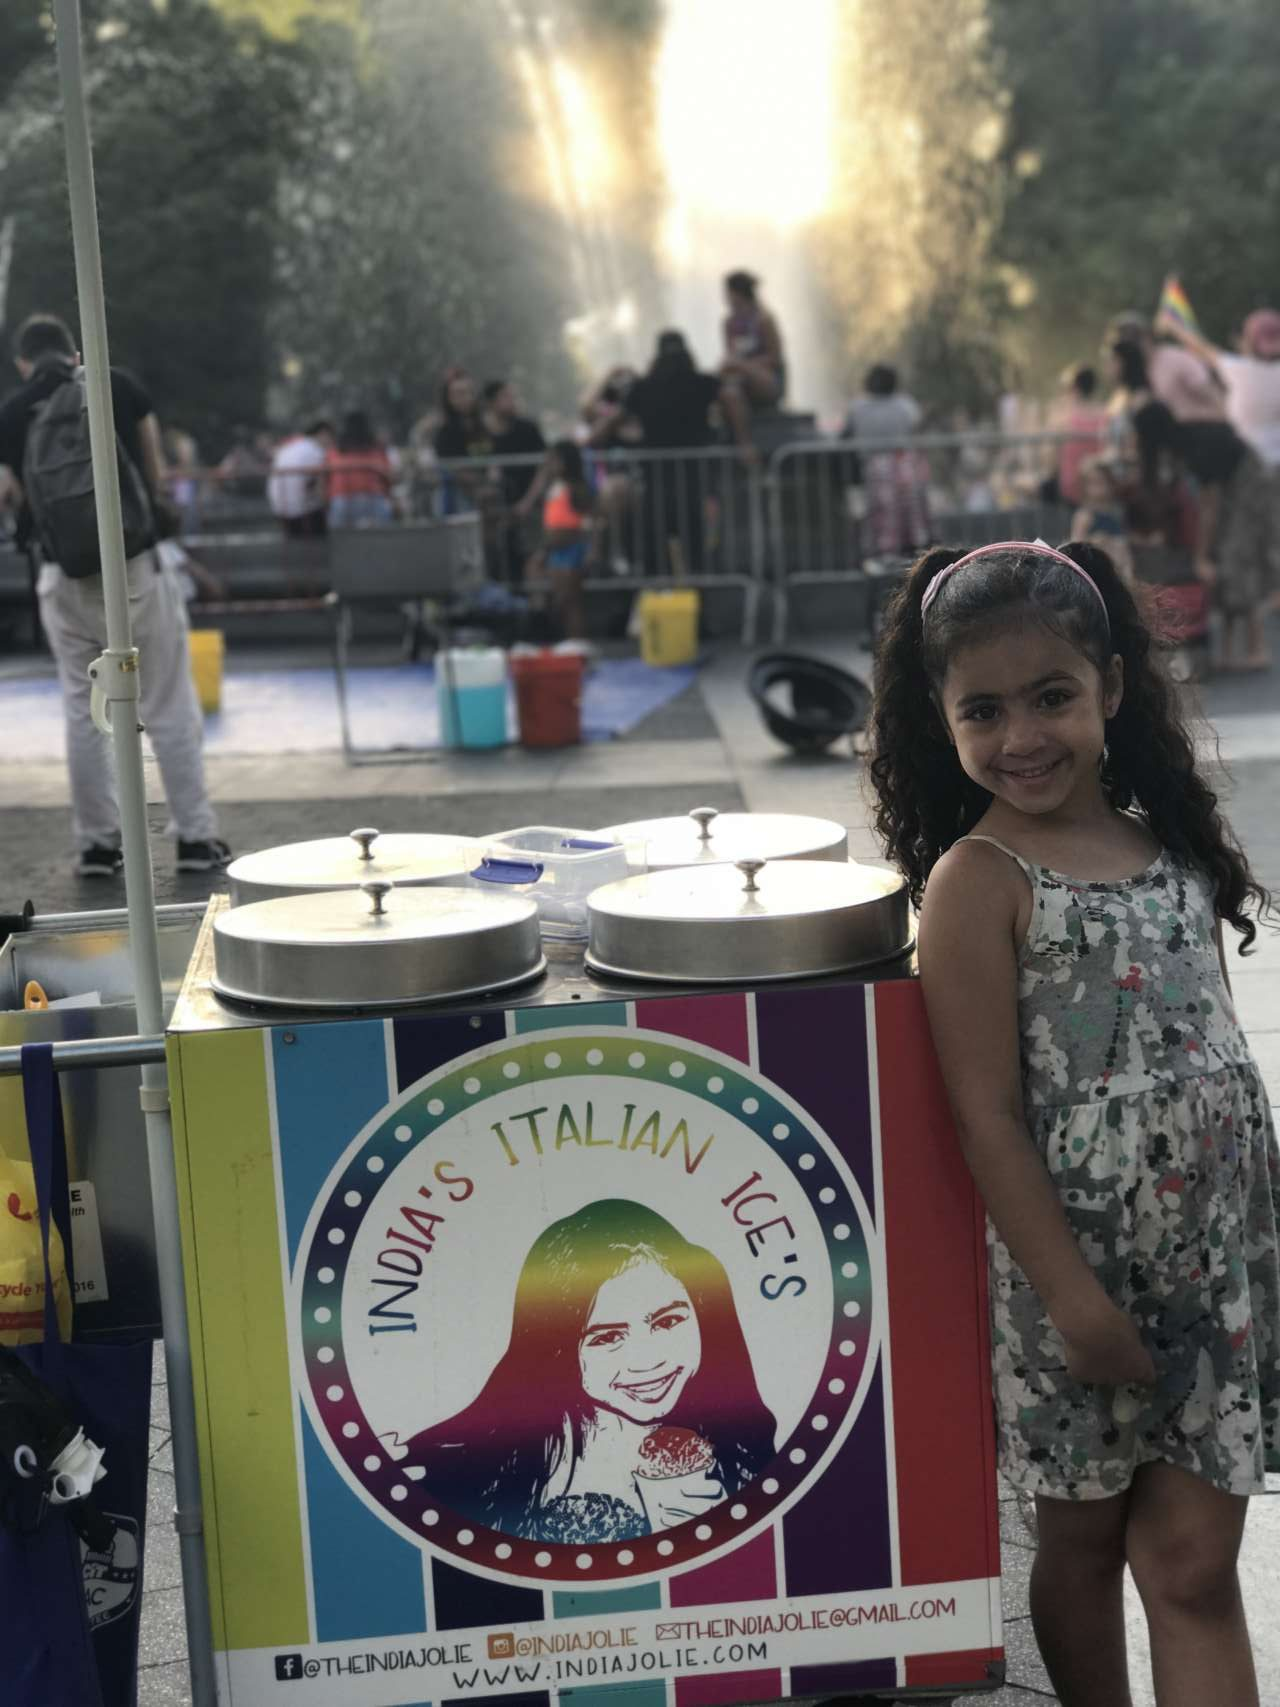 girl India Jolie in printed dress standing next to her rainbow Italian Ice cart in Washington Square Park